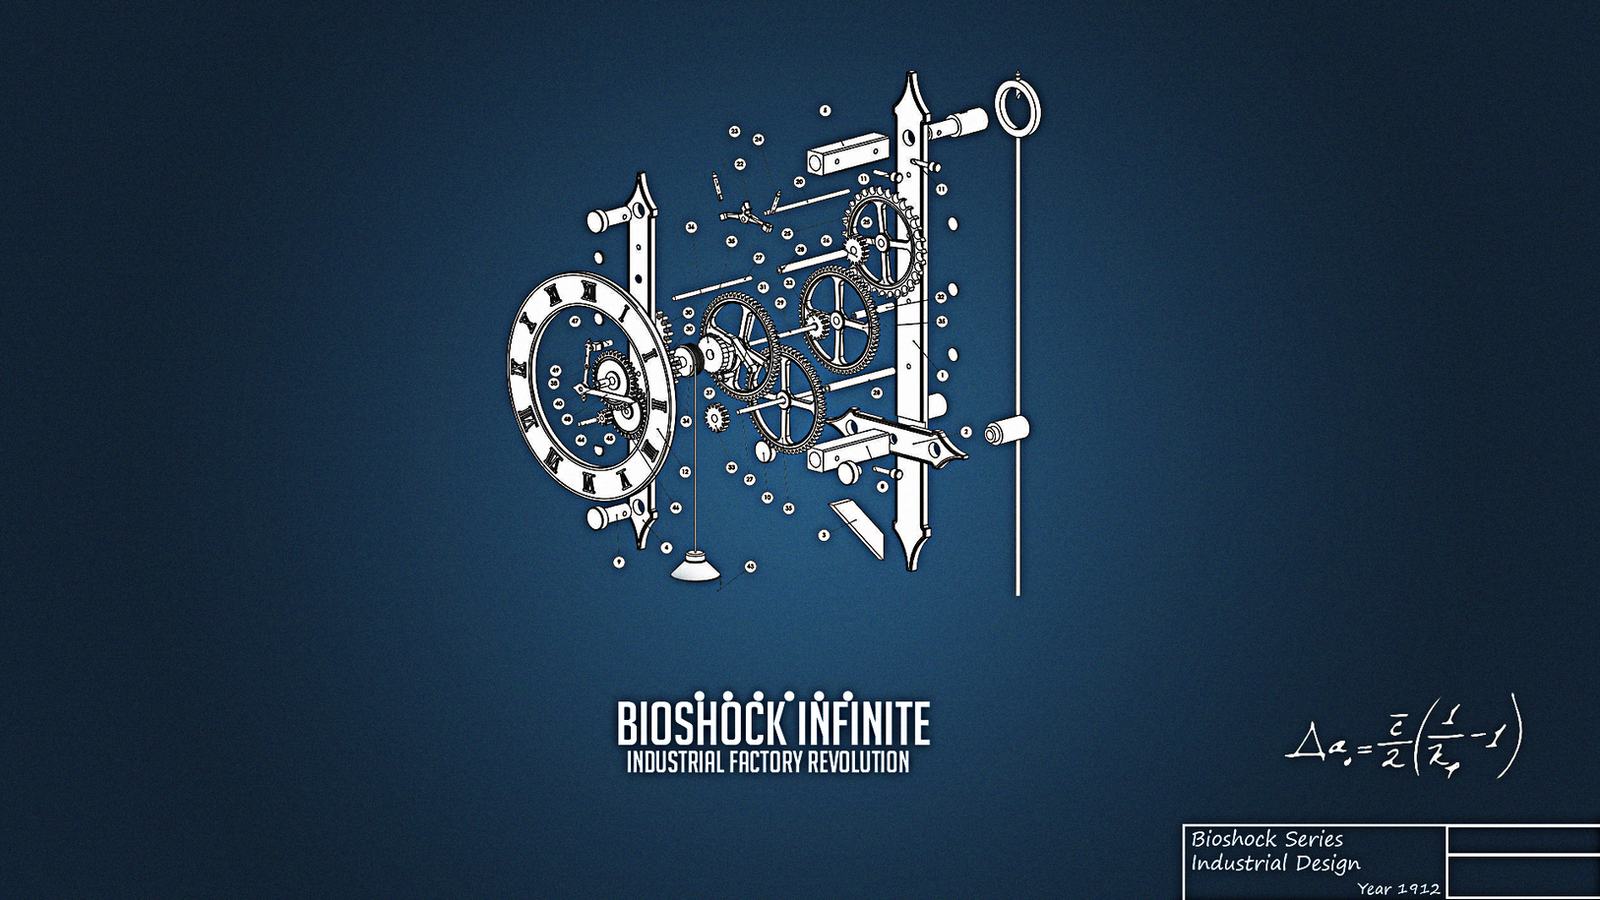 Bioshock Infinite Industrial Factory Wallpaper By HD Wallpapers Download Free Images Wallpaper [1000image.com]